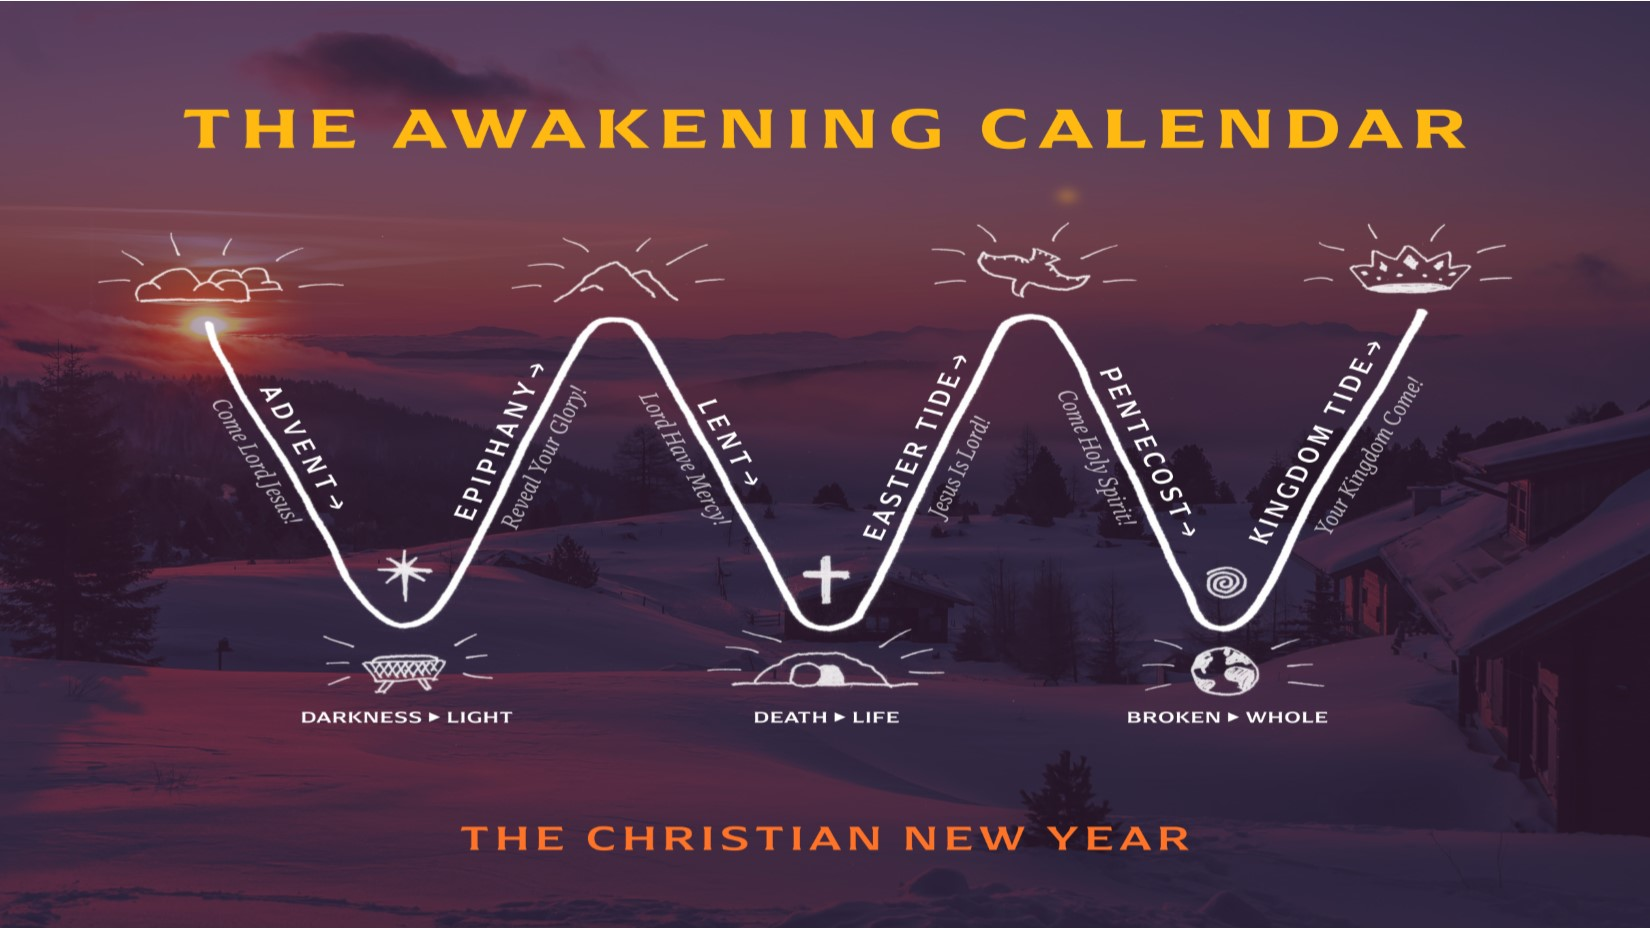 11.29.2020 1st Sunday of Advent The Christian New Year: A Year of Awakening Romans 13:11 – 14